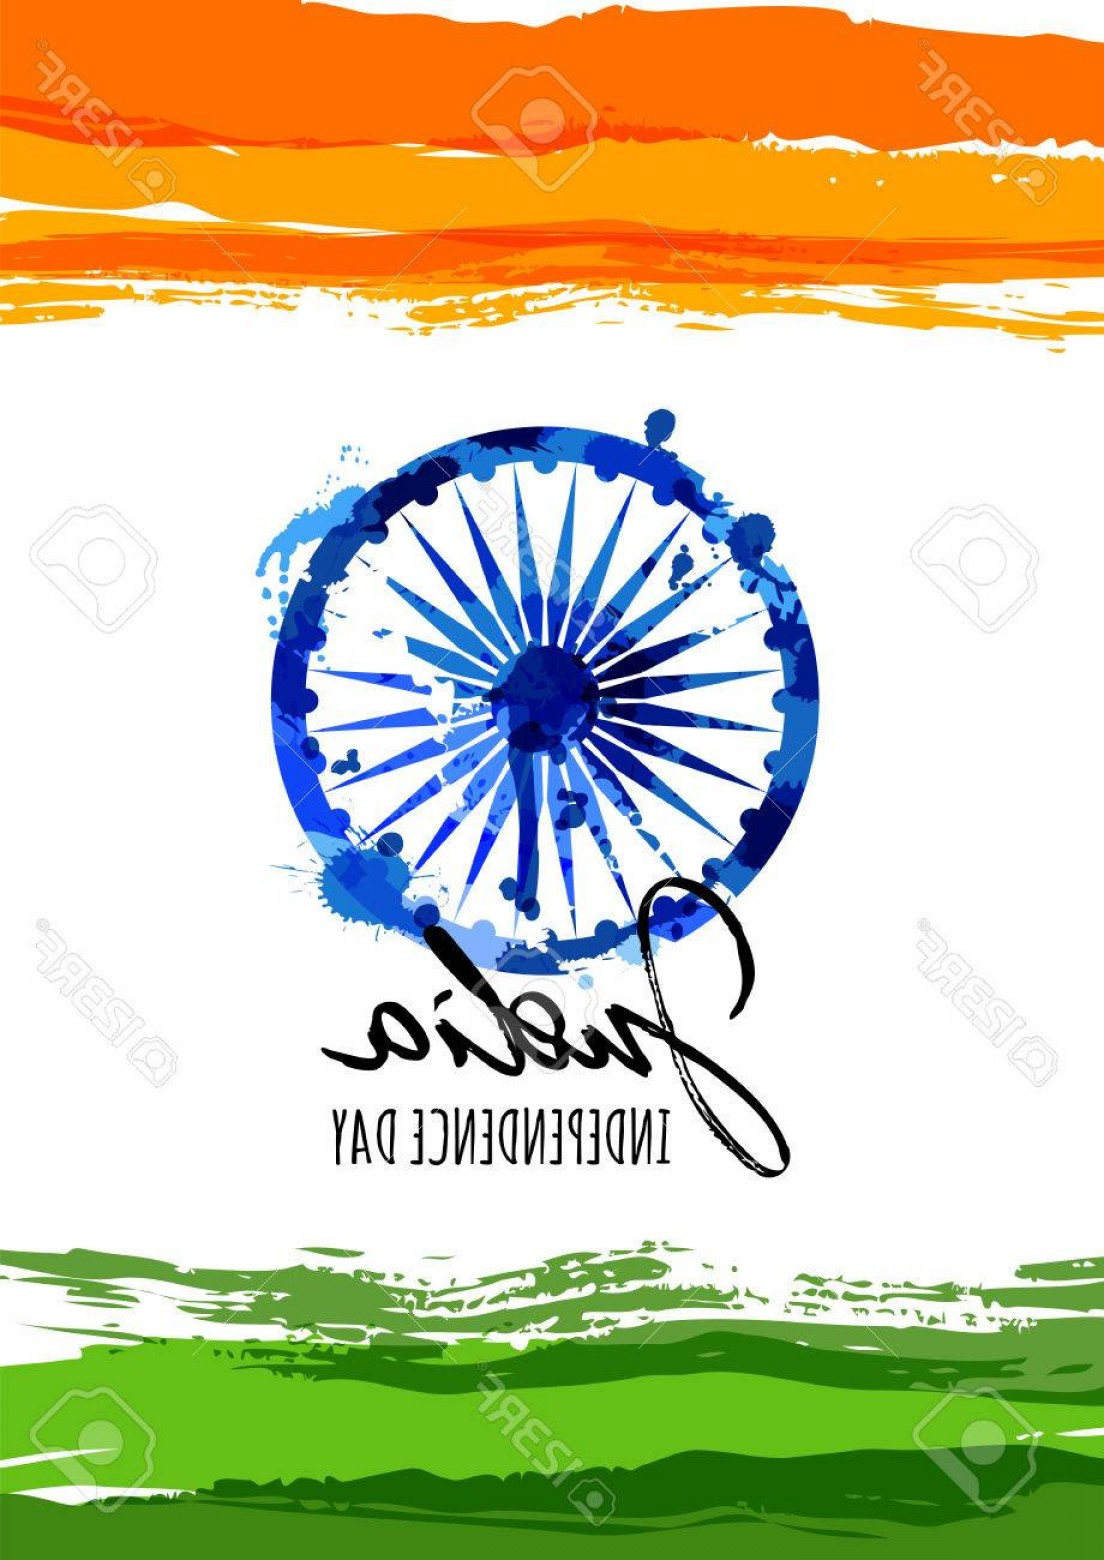 India Flag Vector: Photostock Vector India Flag Vector Illustration With Hand Drawn Calligraphy Lettering India Independence Day Watercol